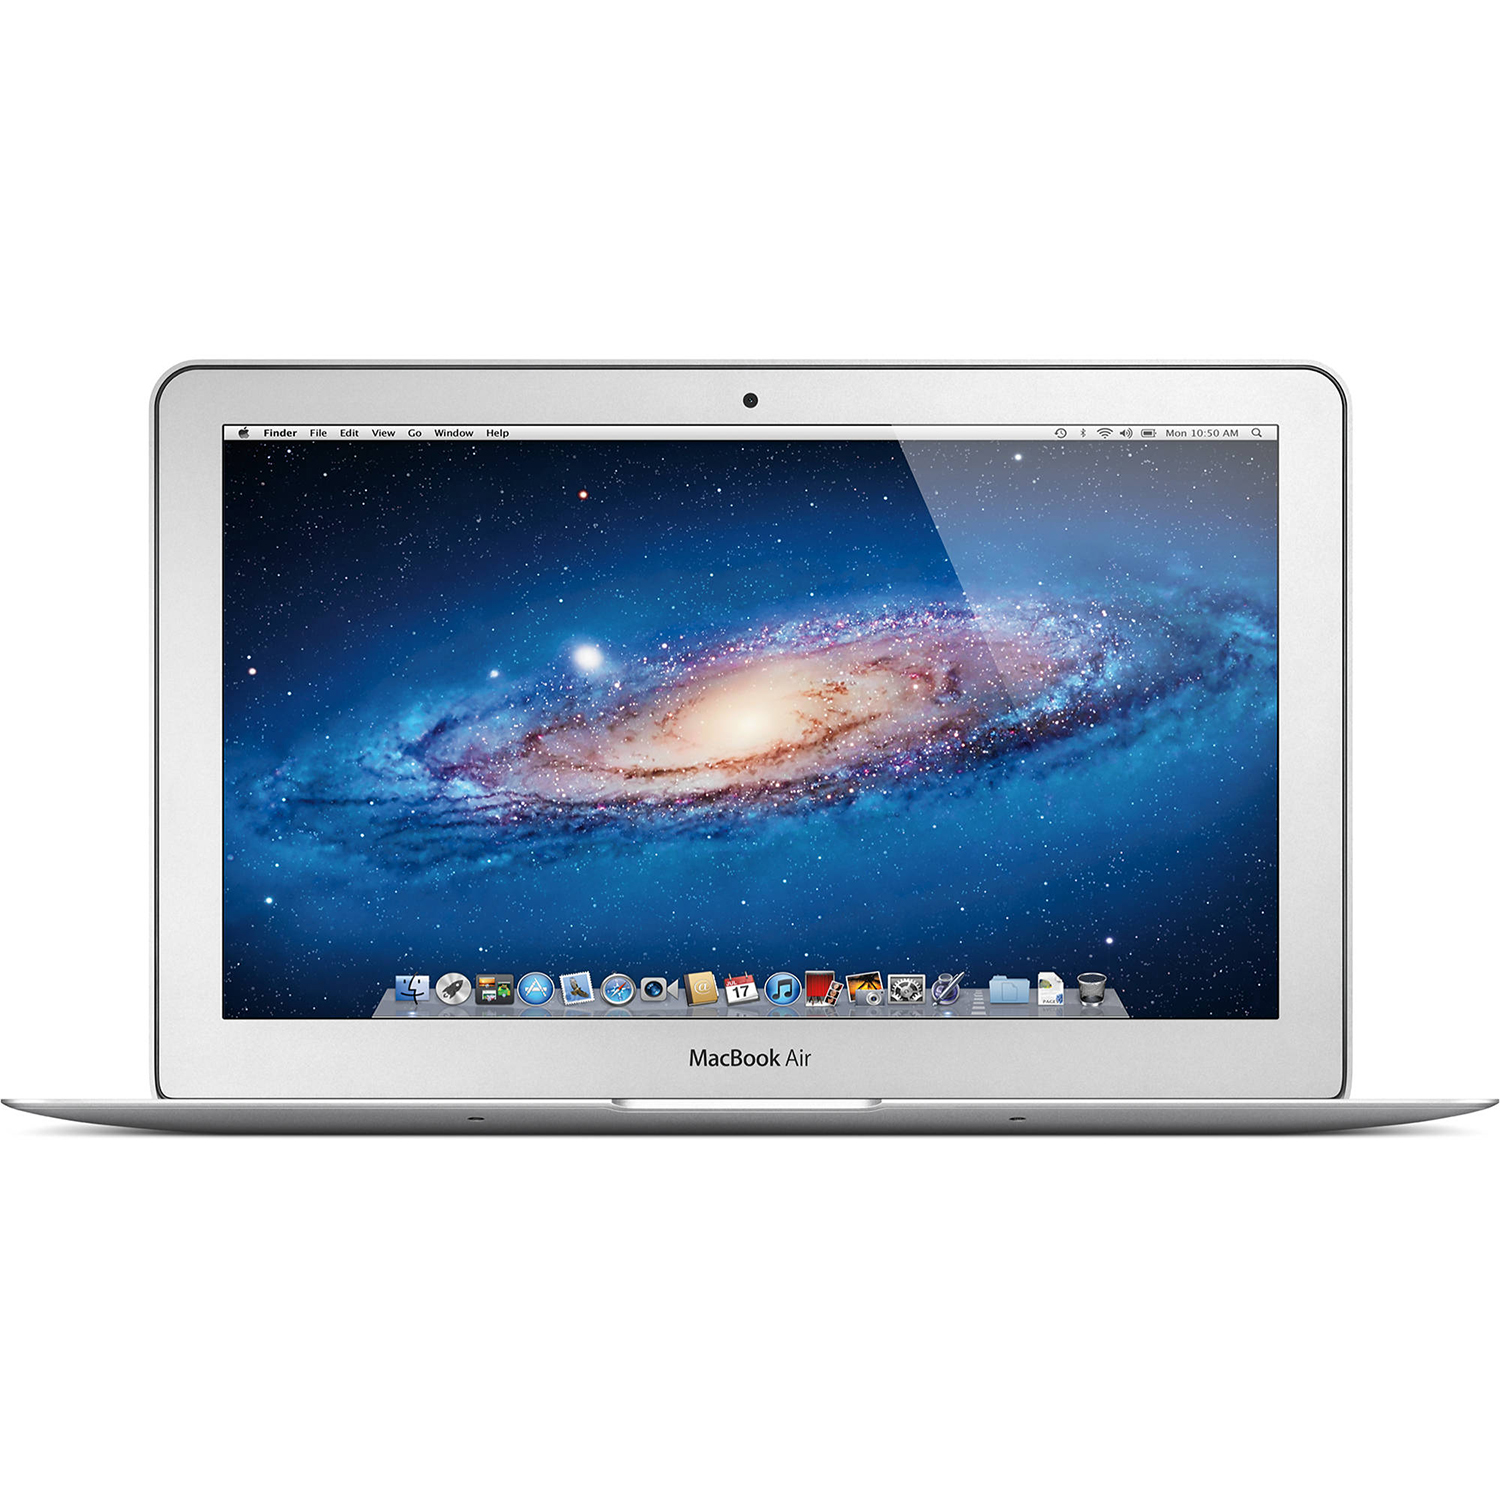 Apple MacBook Air Core i5-3317U Dual-Core 1.7GHz 4GB 64GB...